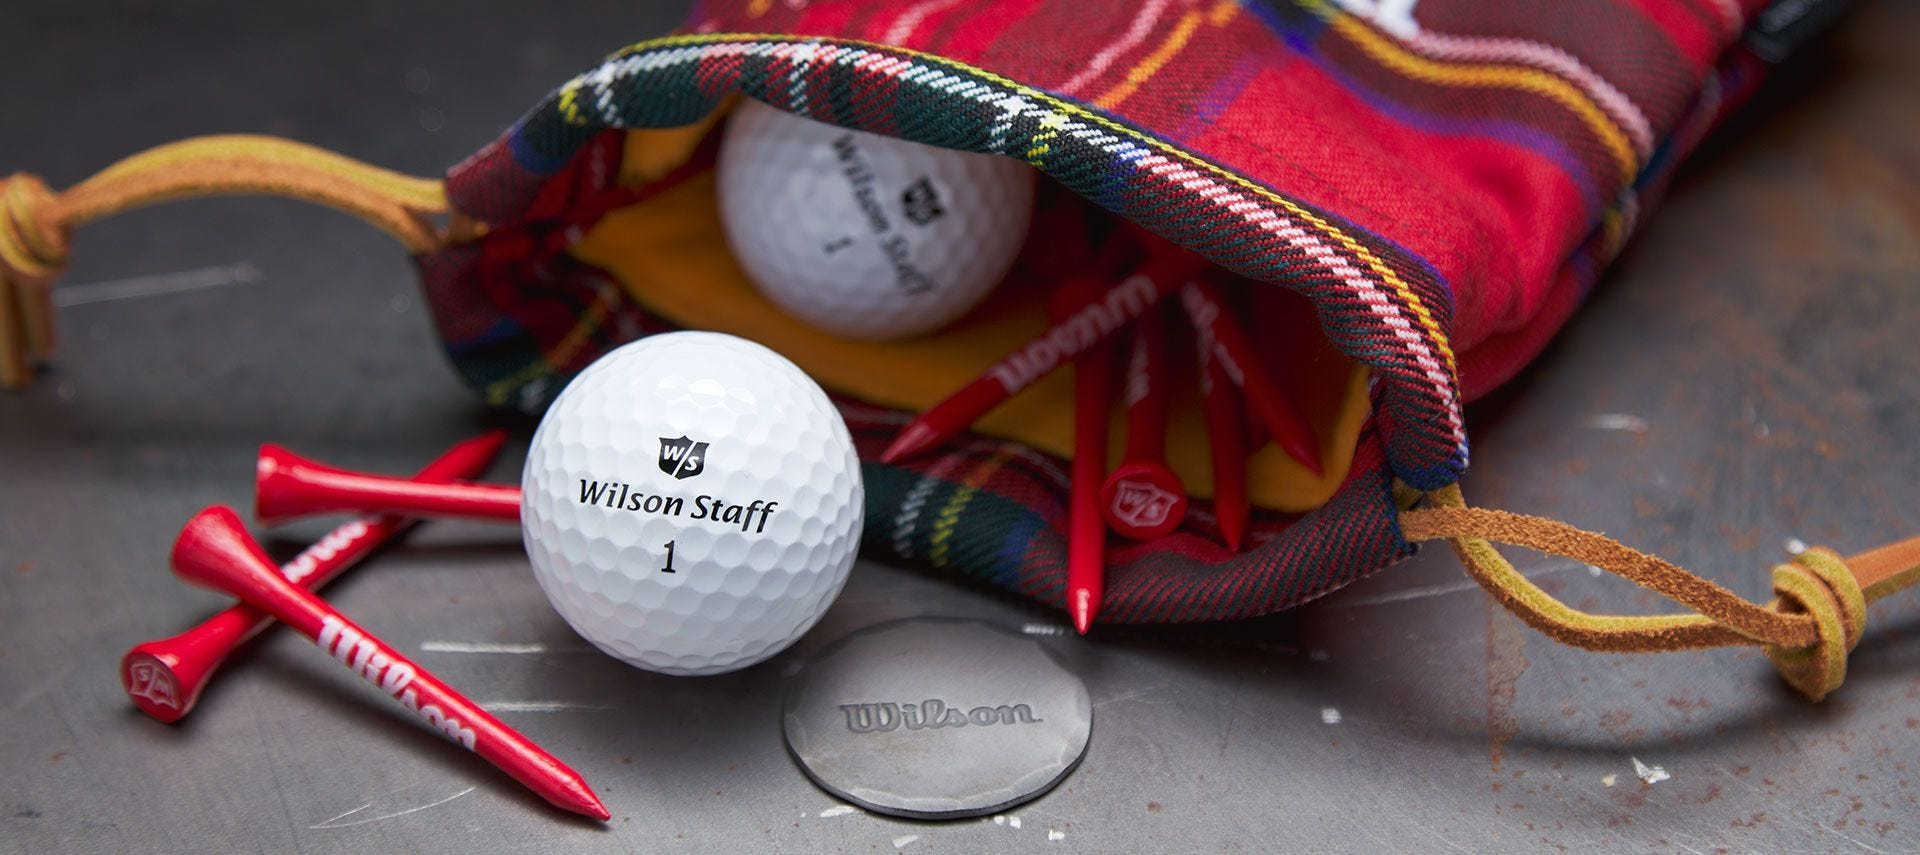 Seamus x Wilson pouch holding balls and tees